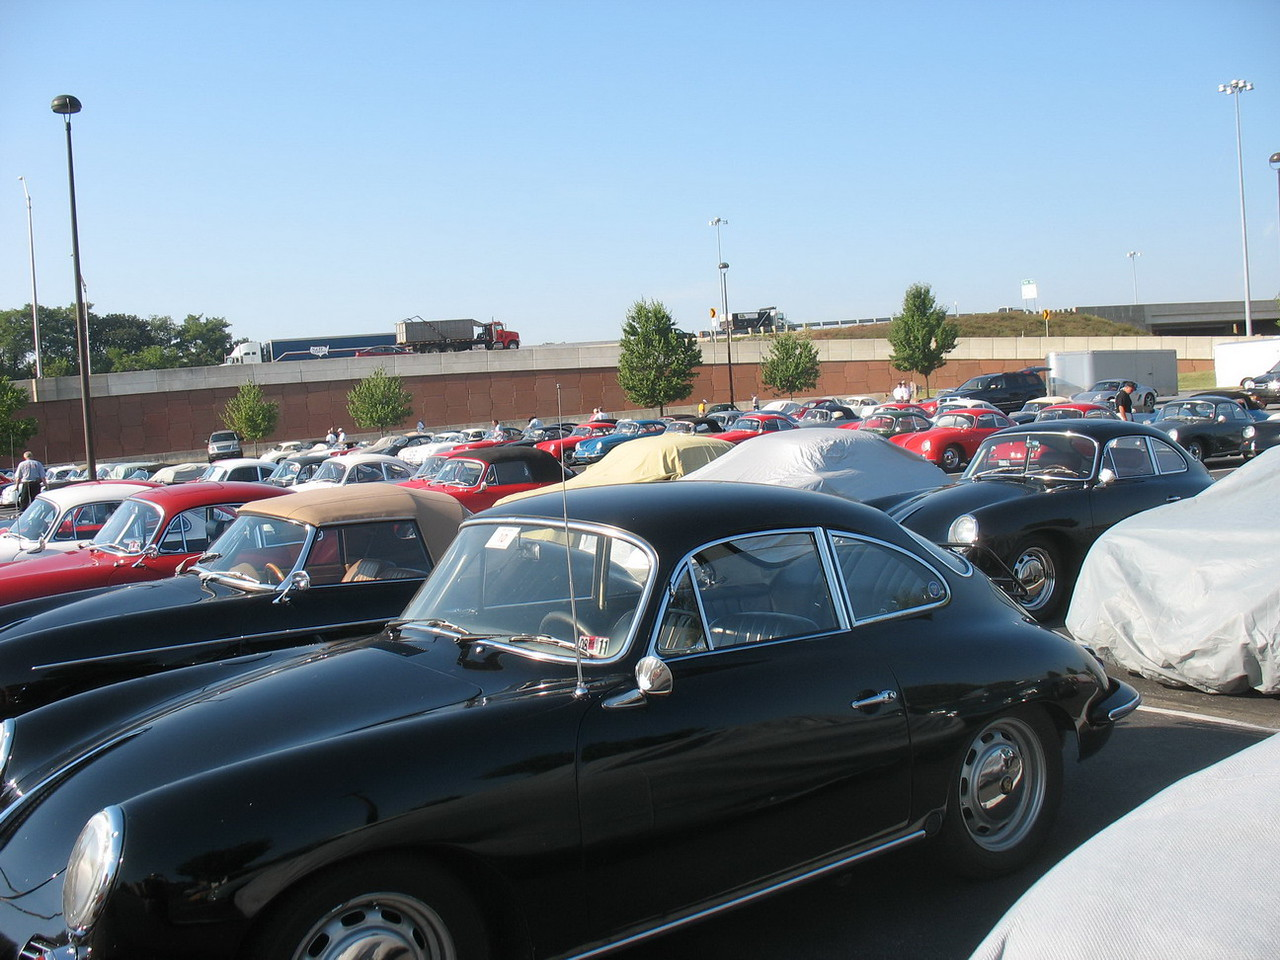 Part of the 356 reserved parking lot at the Eden Resort.<br /> <br /> The last of these cars was made in 1965 so ours is one of the newer ones.